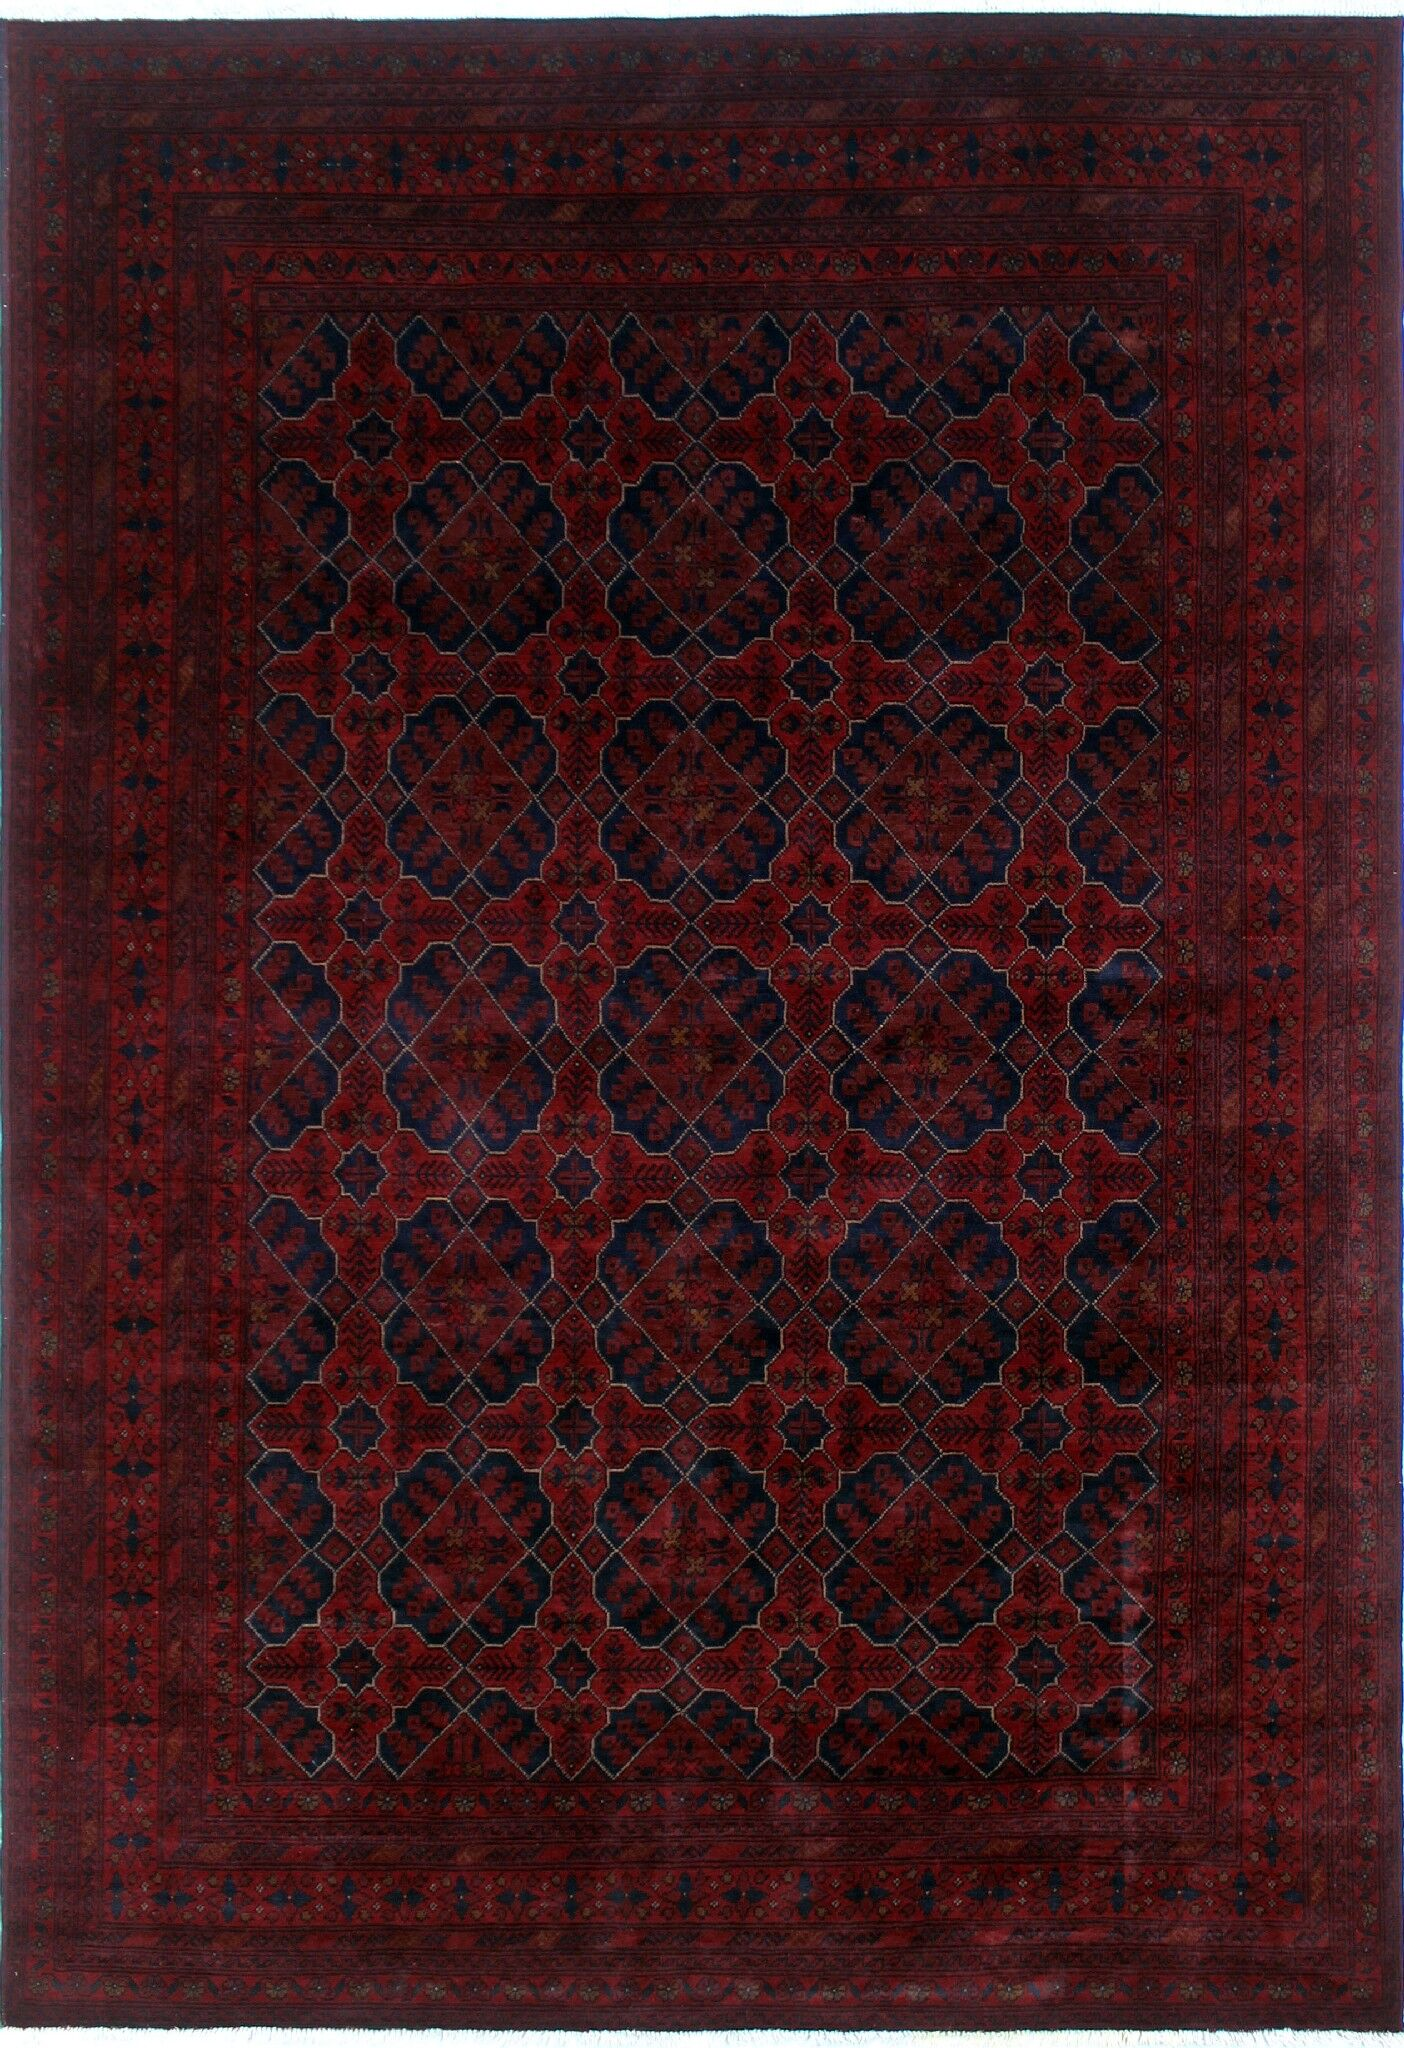 One-of-a-Kind Abeyta Hand-Knotted Rectangle Red Fringe Area Rug